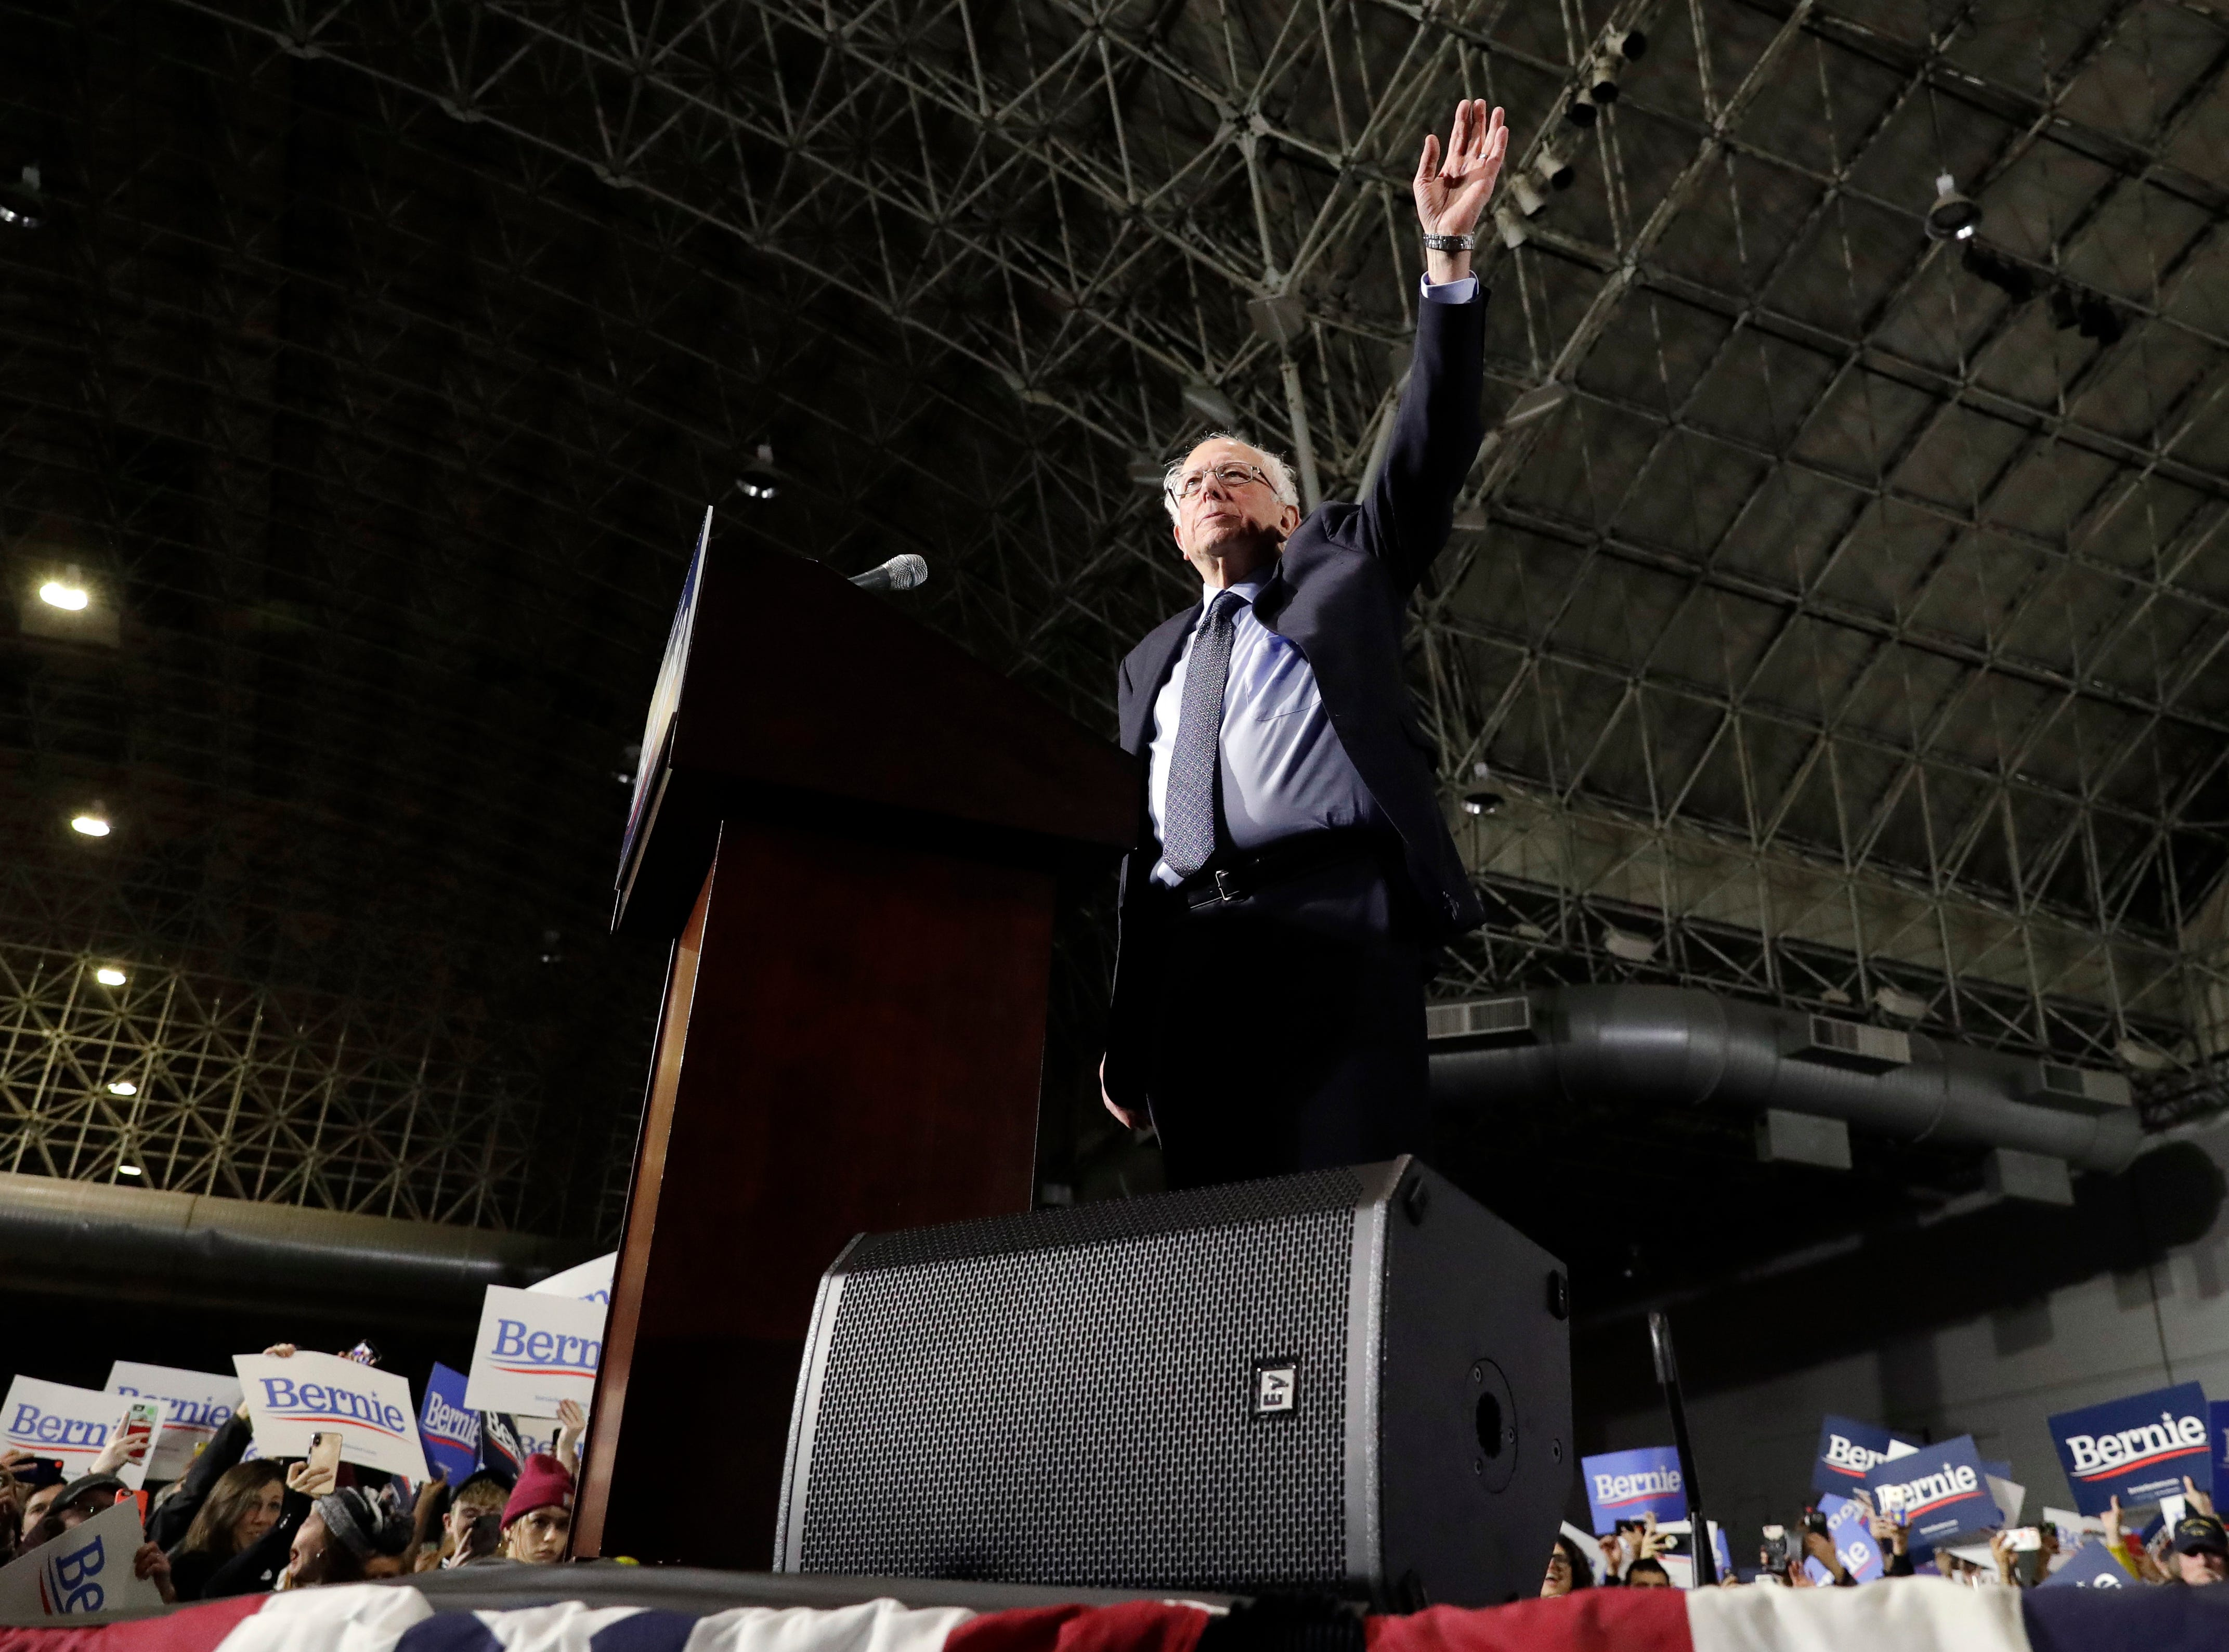 Sen. Bernie Sanders, I-Vt., waves as he arrives to the stage as he kicks off his 2020 presidential campaign at Navy Pier in Chicago, Sunday, March 3, 2019. Over the next several weeks, Sanders will travel to Iowa, New Hampshire, South Carolina, Nevada, and California. He will then return to Burlington, Vt., for the official launch of his campaign.